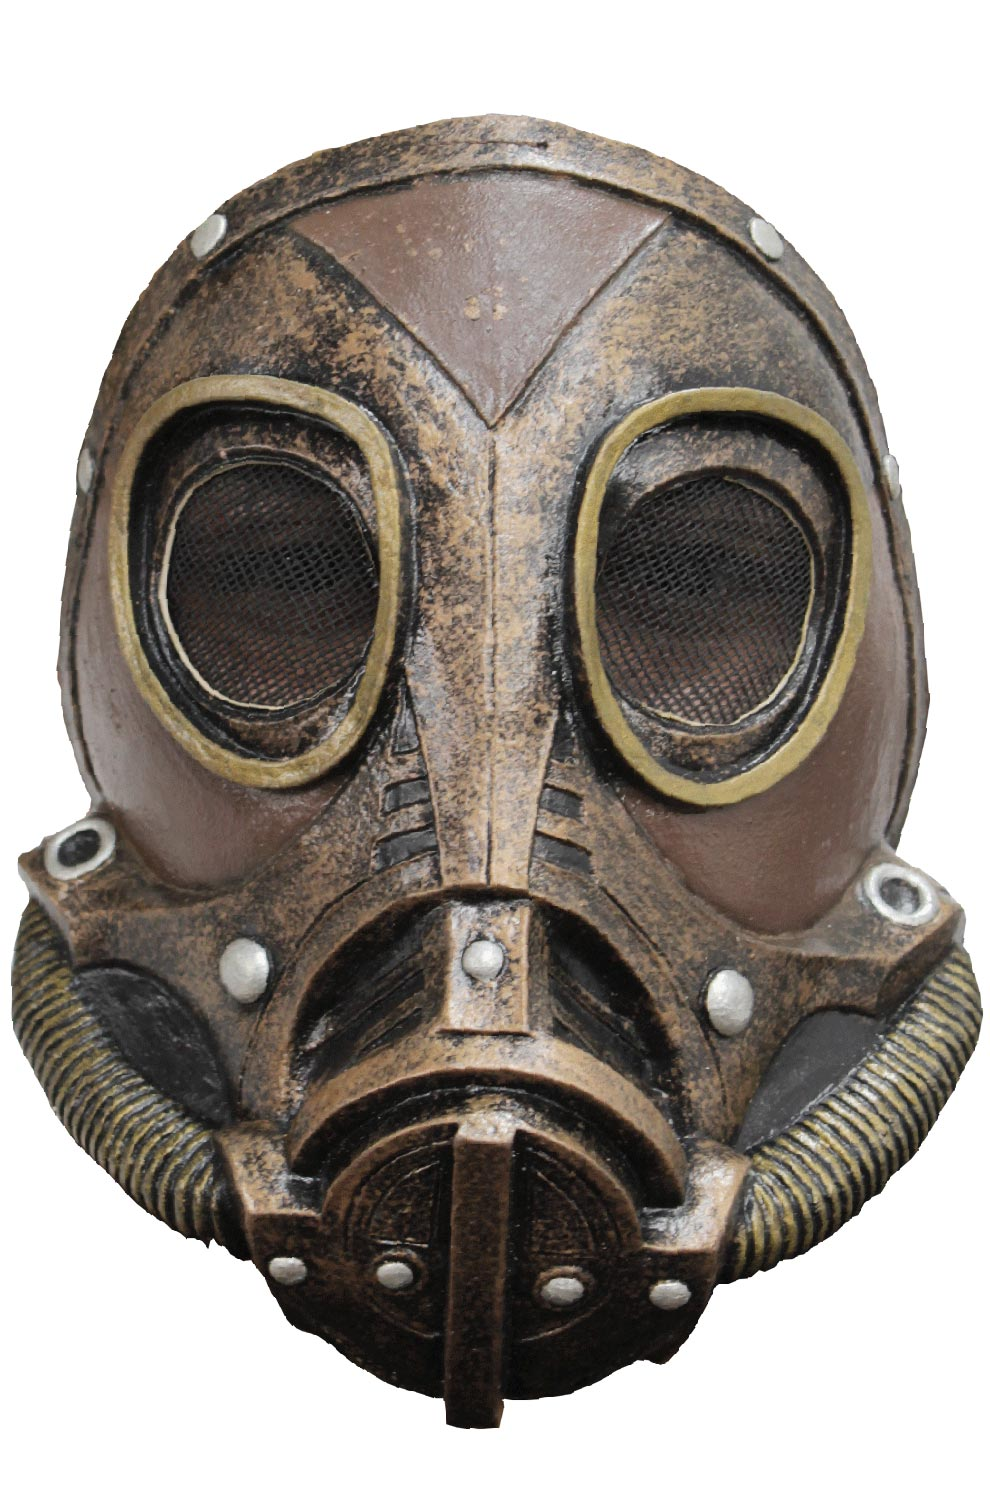 M3A1 Steampunk Gas Mask by Ghoulish Masks